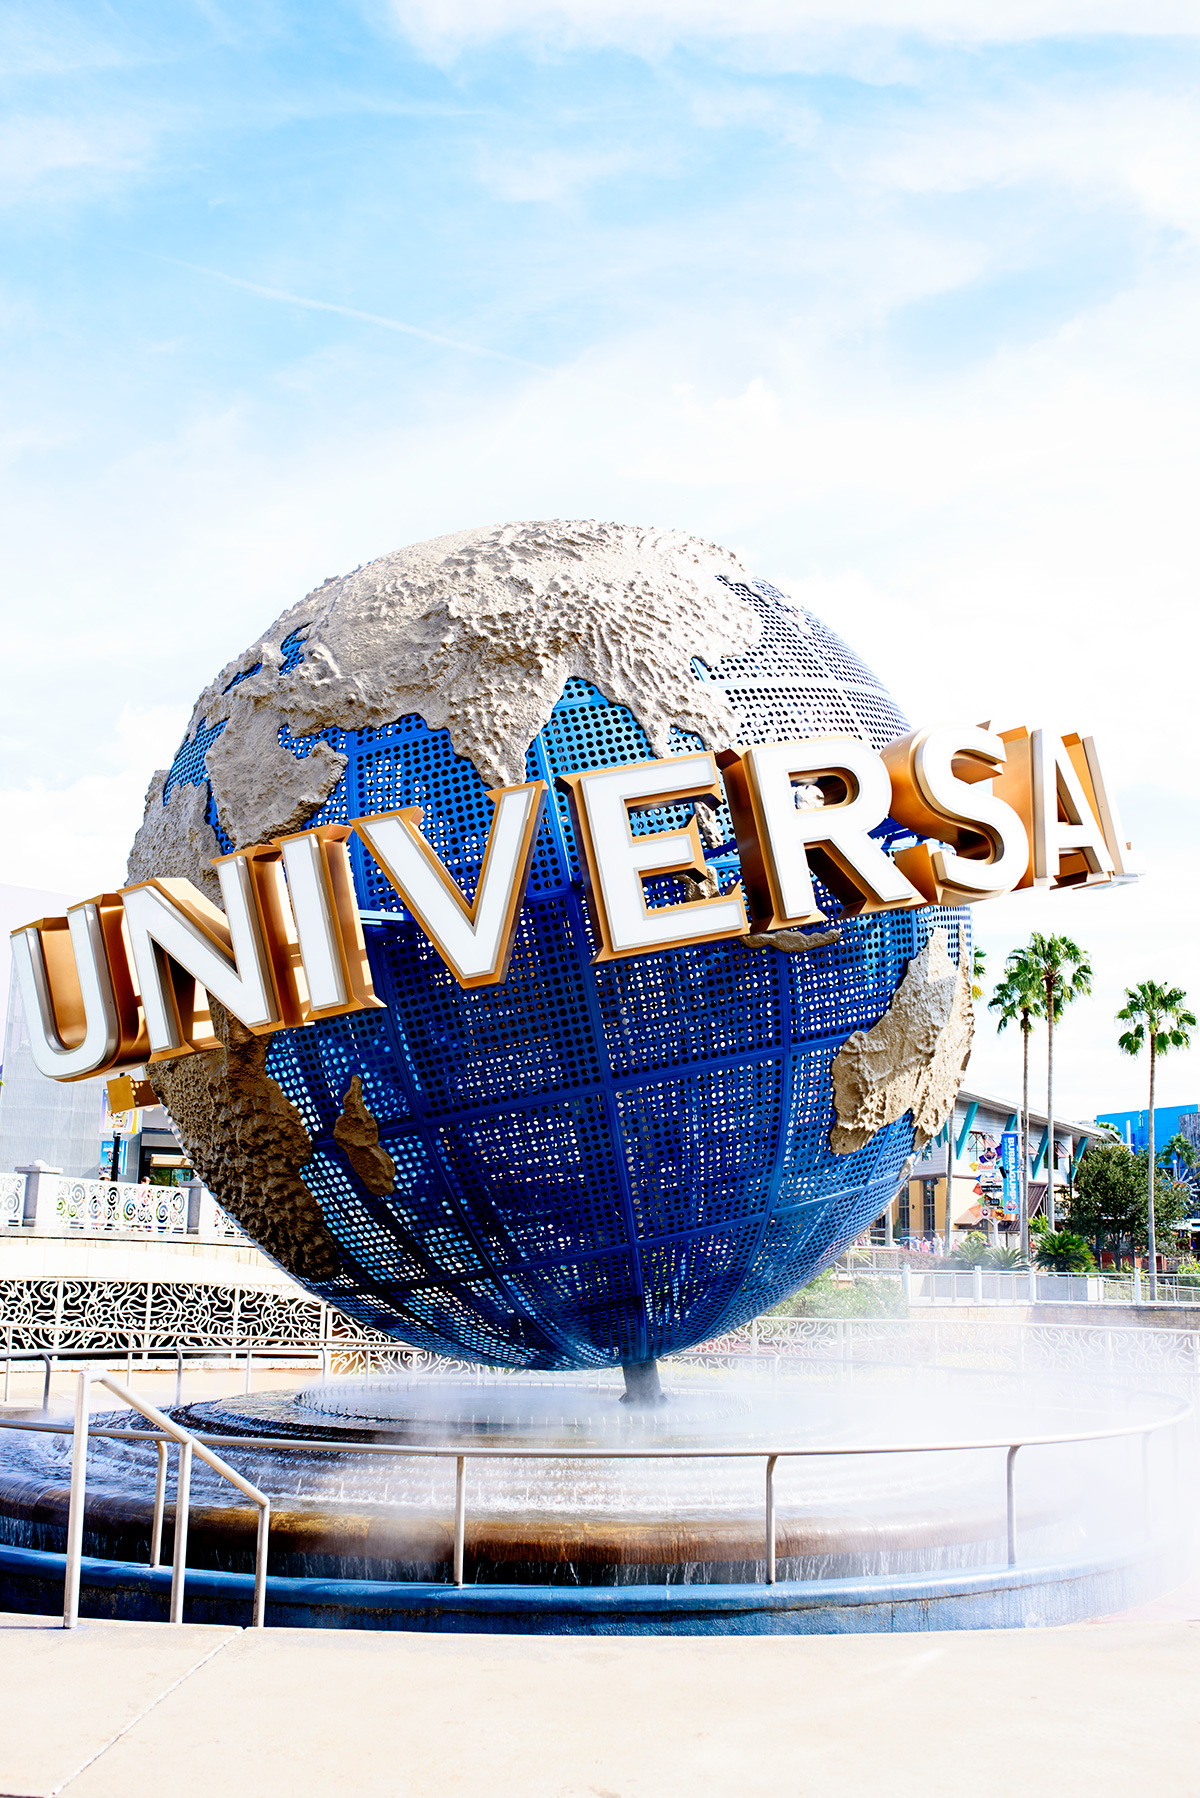 Taking Young Children to Universal Studios